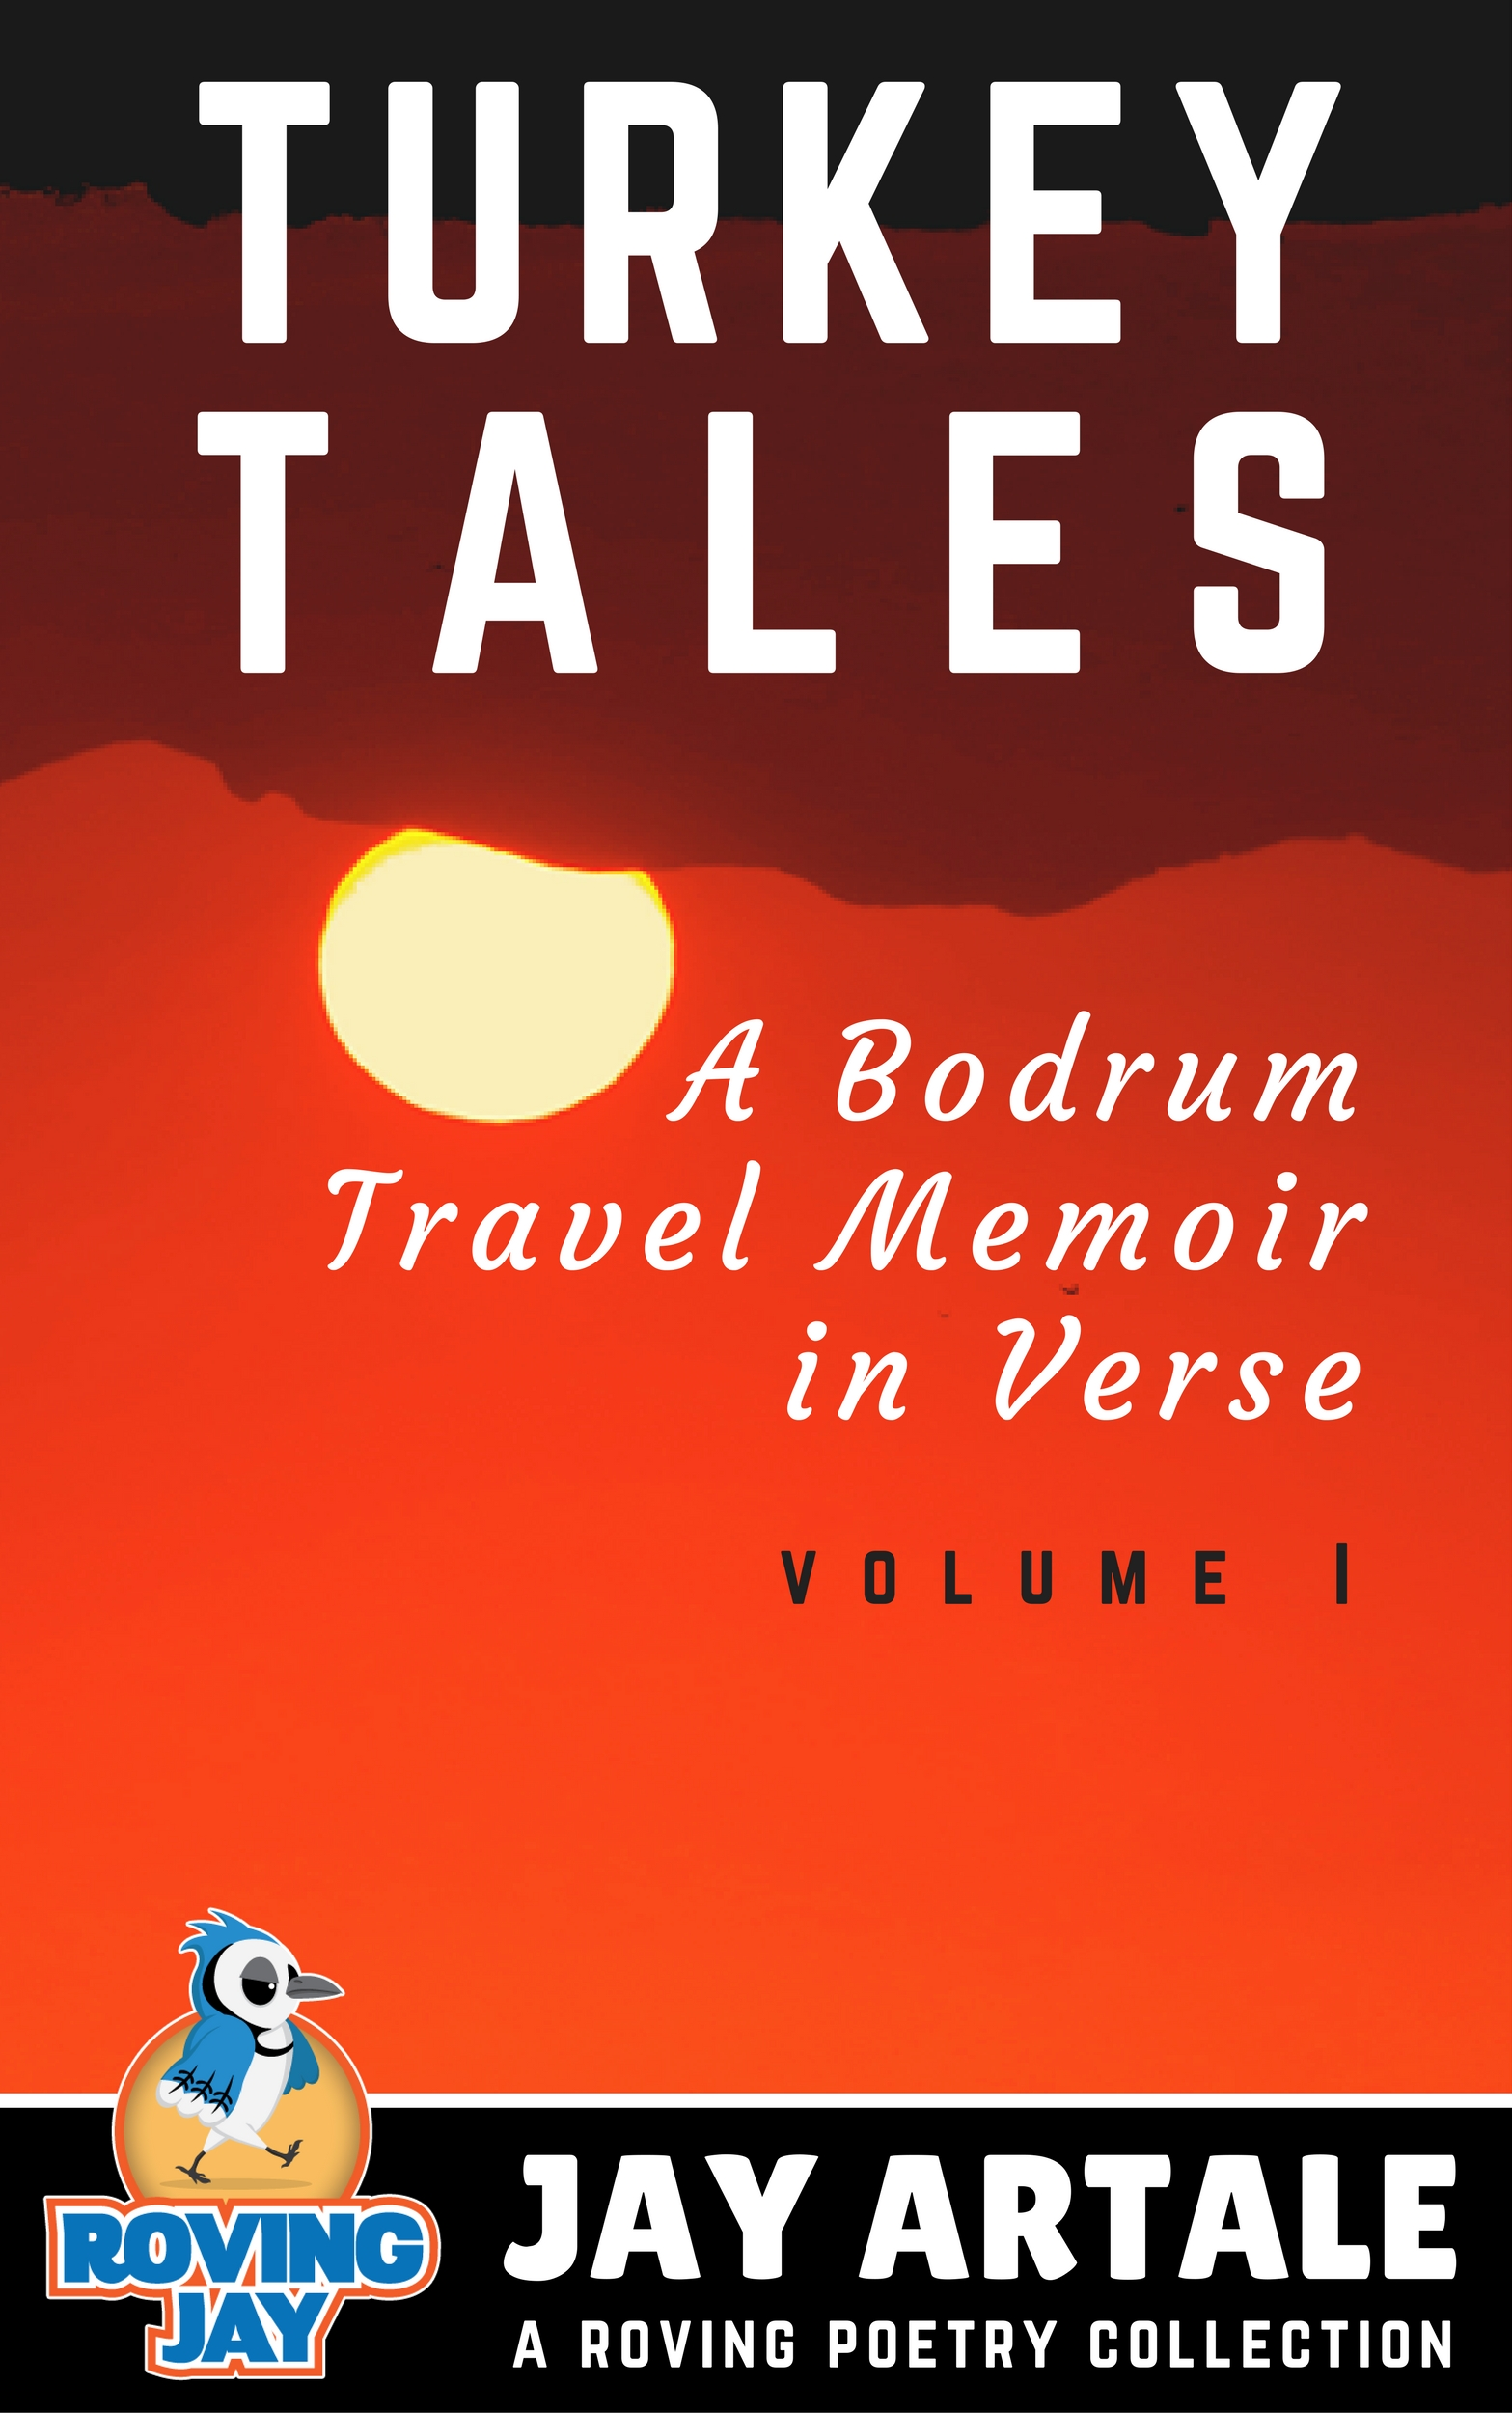 Turkey Tales A Bodrum Travel Memoir in Verse Volume 1